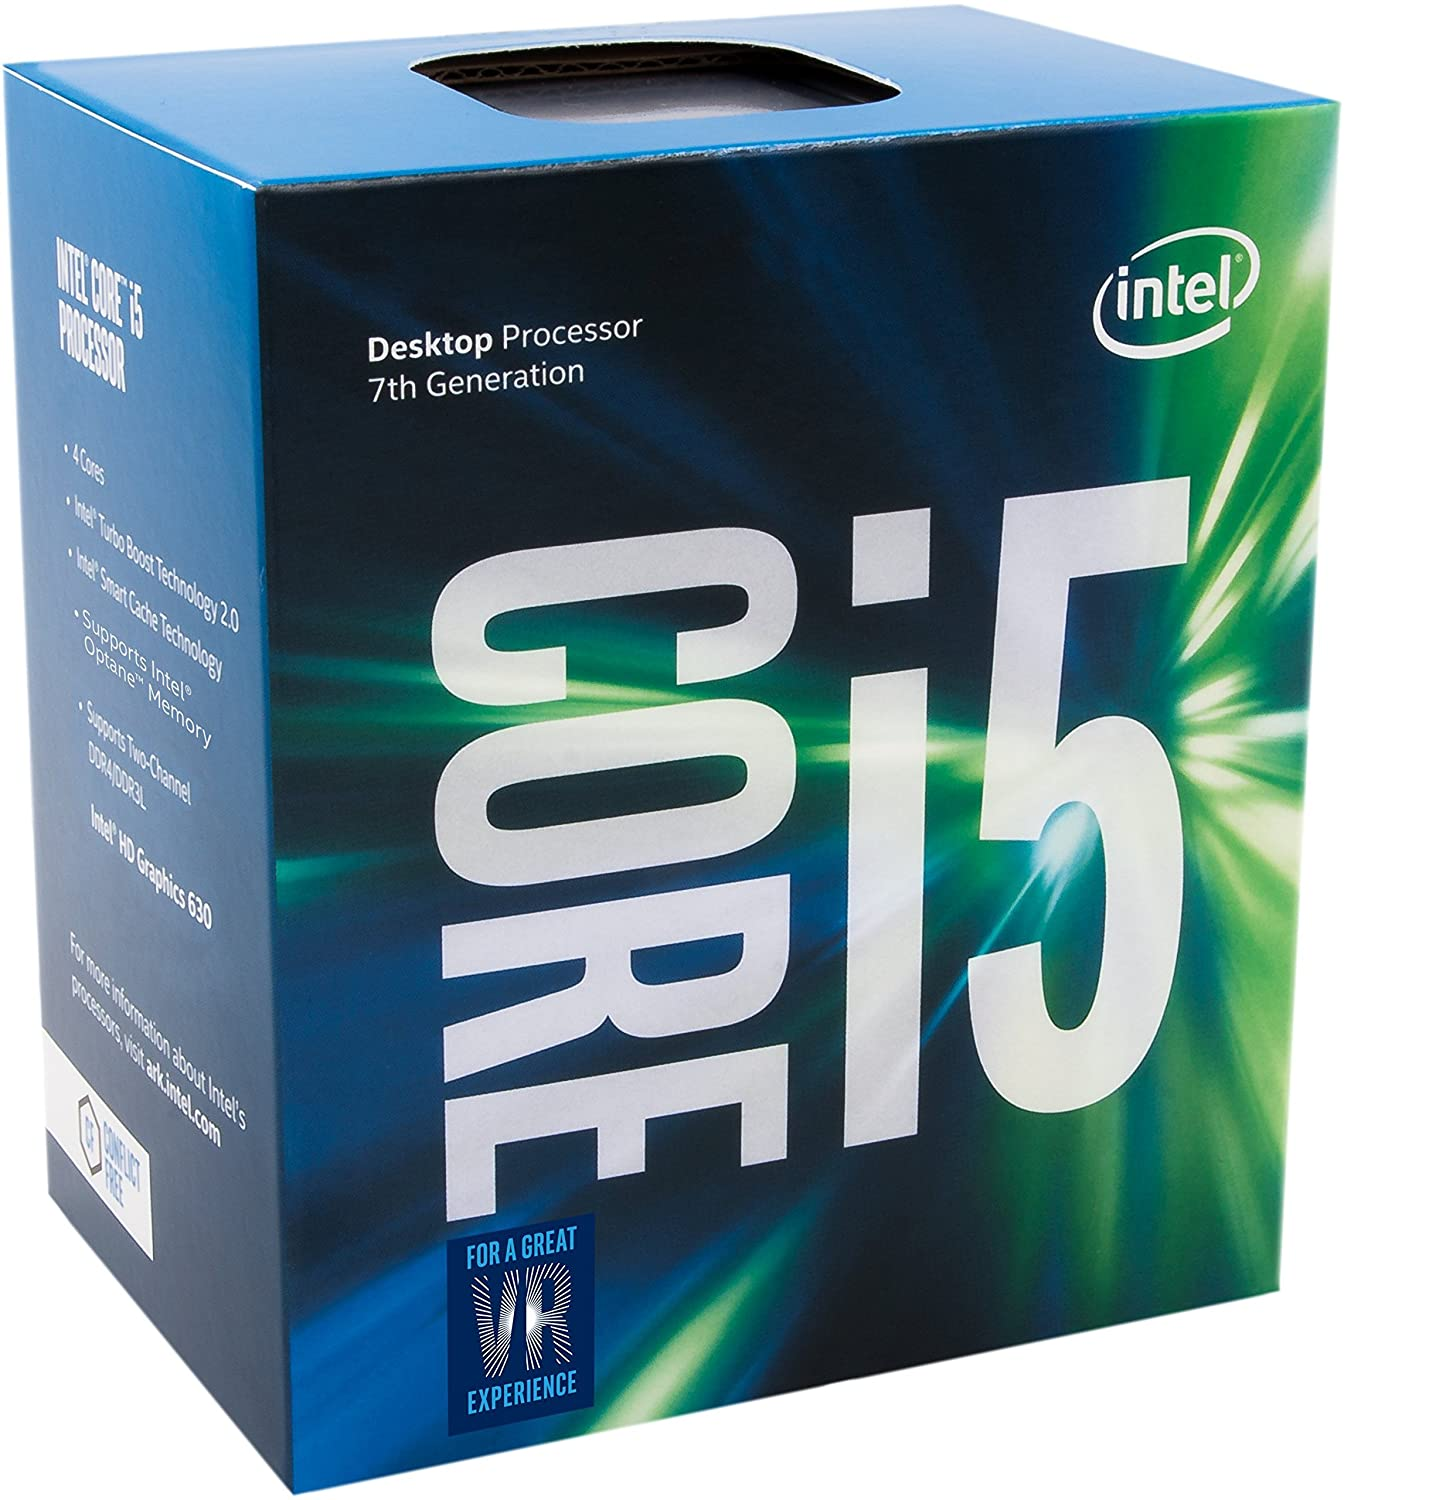 Image result for i5 cpu box